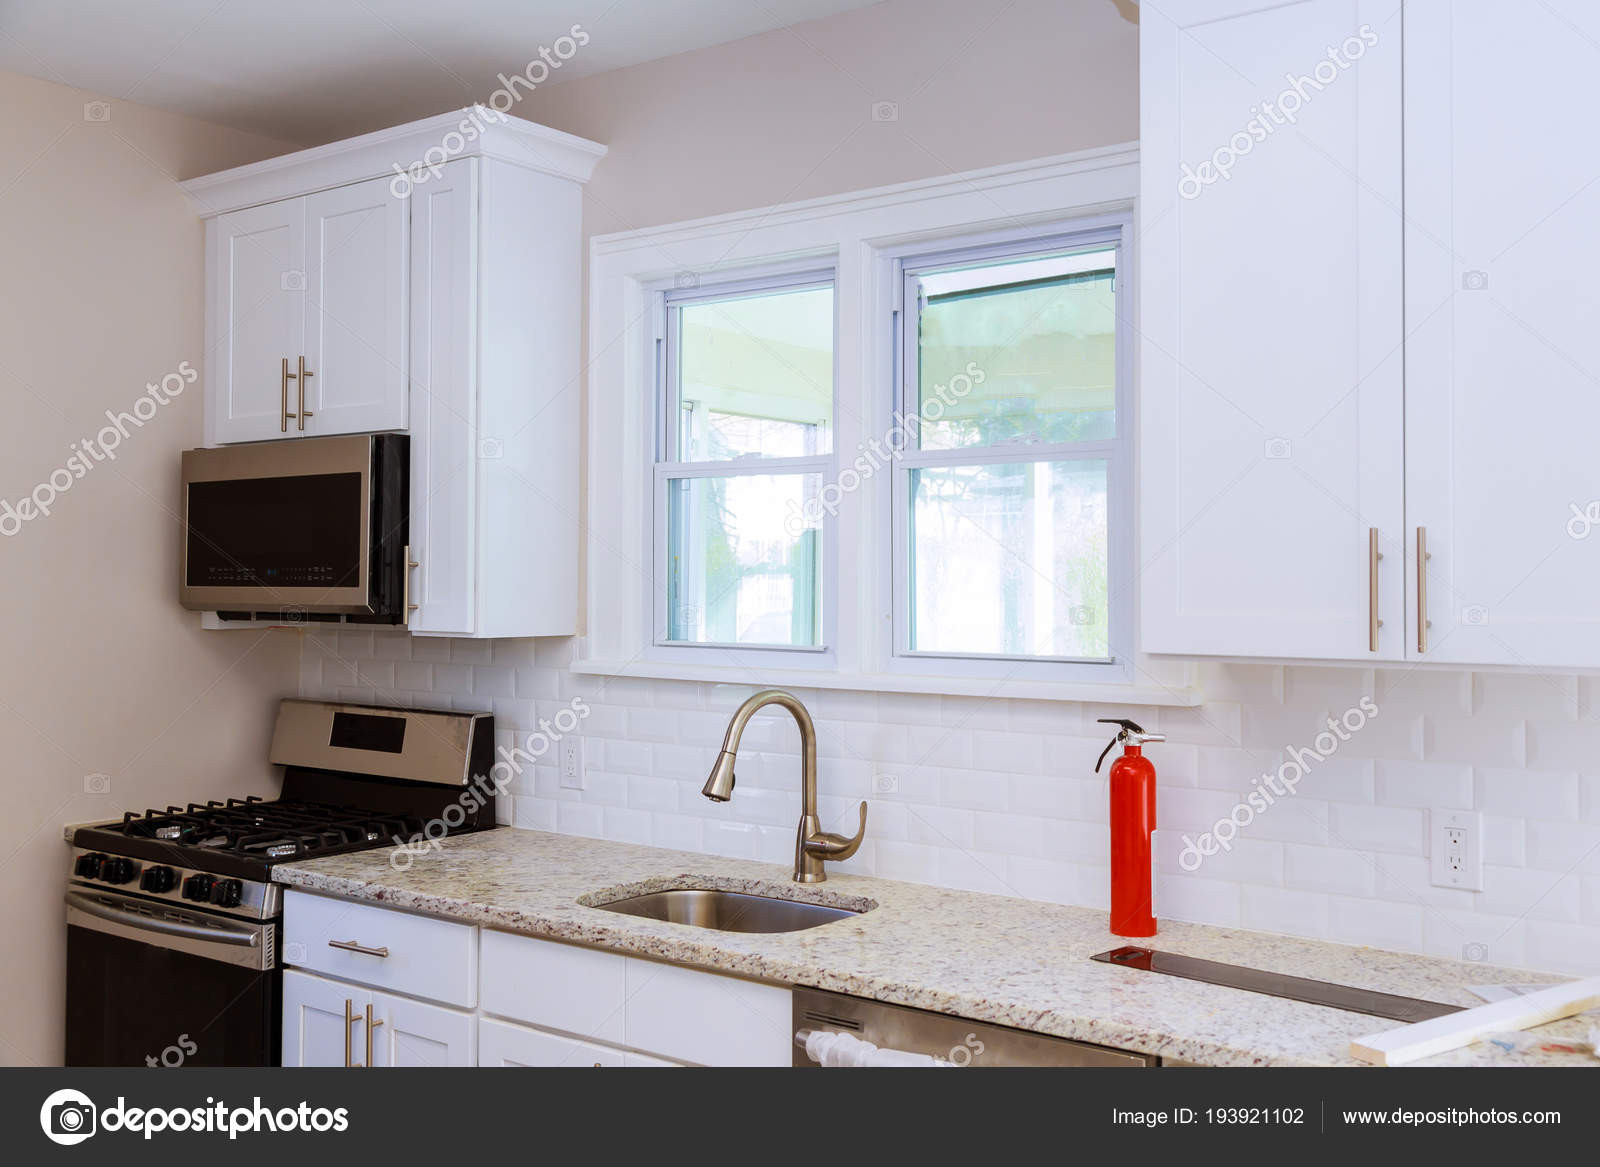 stock photo close up of a kitchen